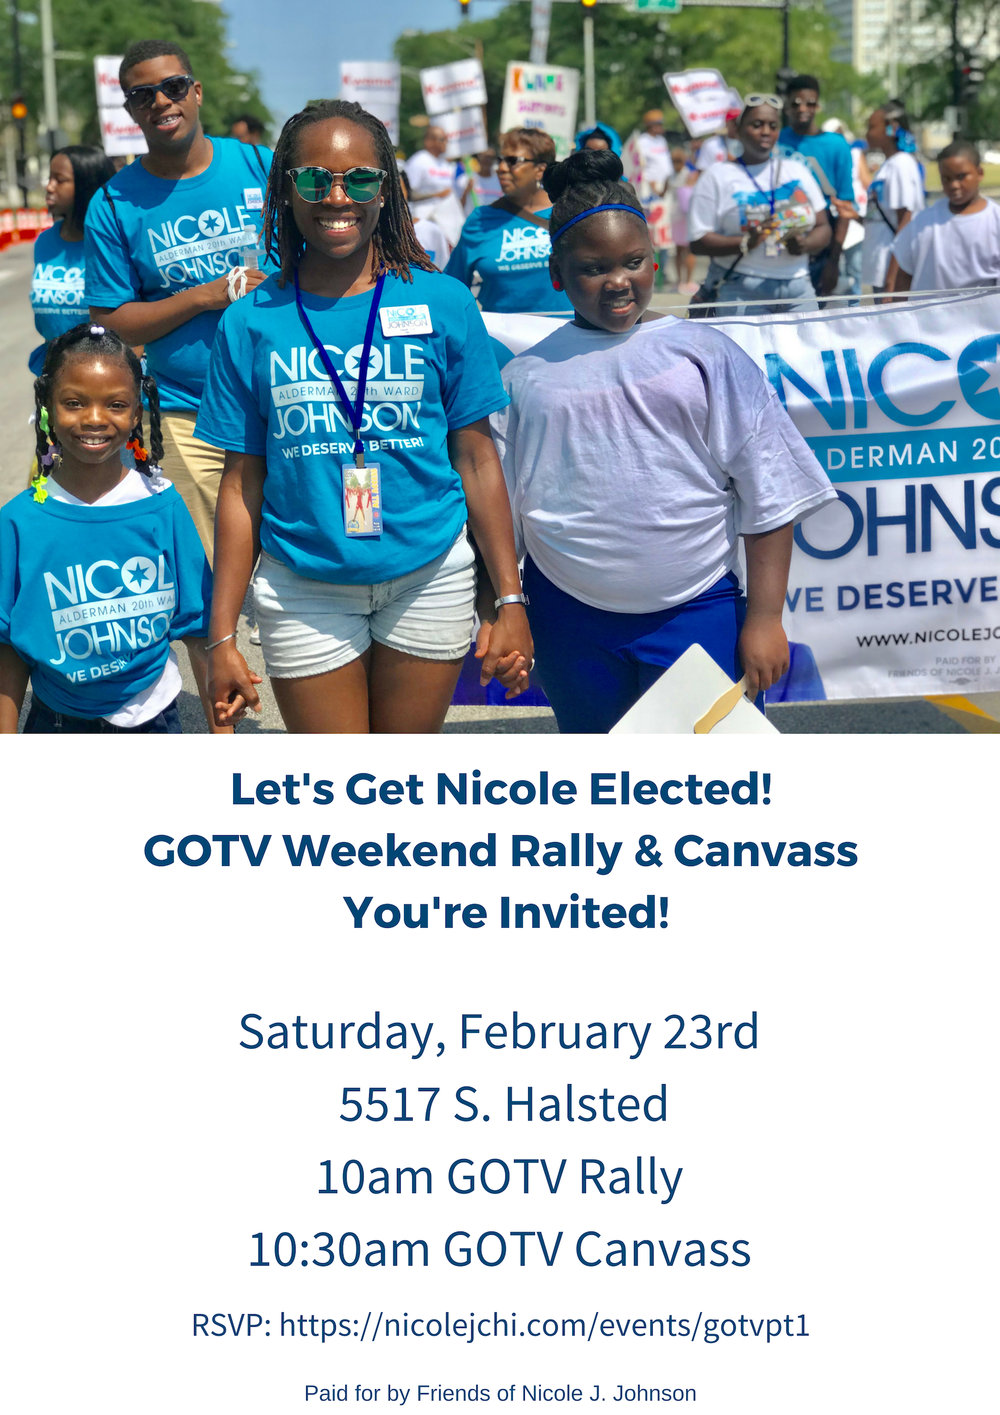 GOTV Rally and Canvass.jpg